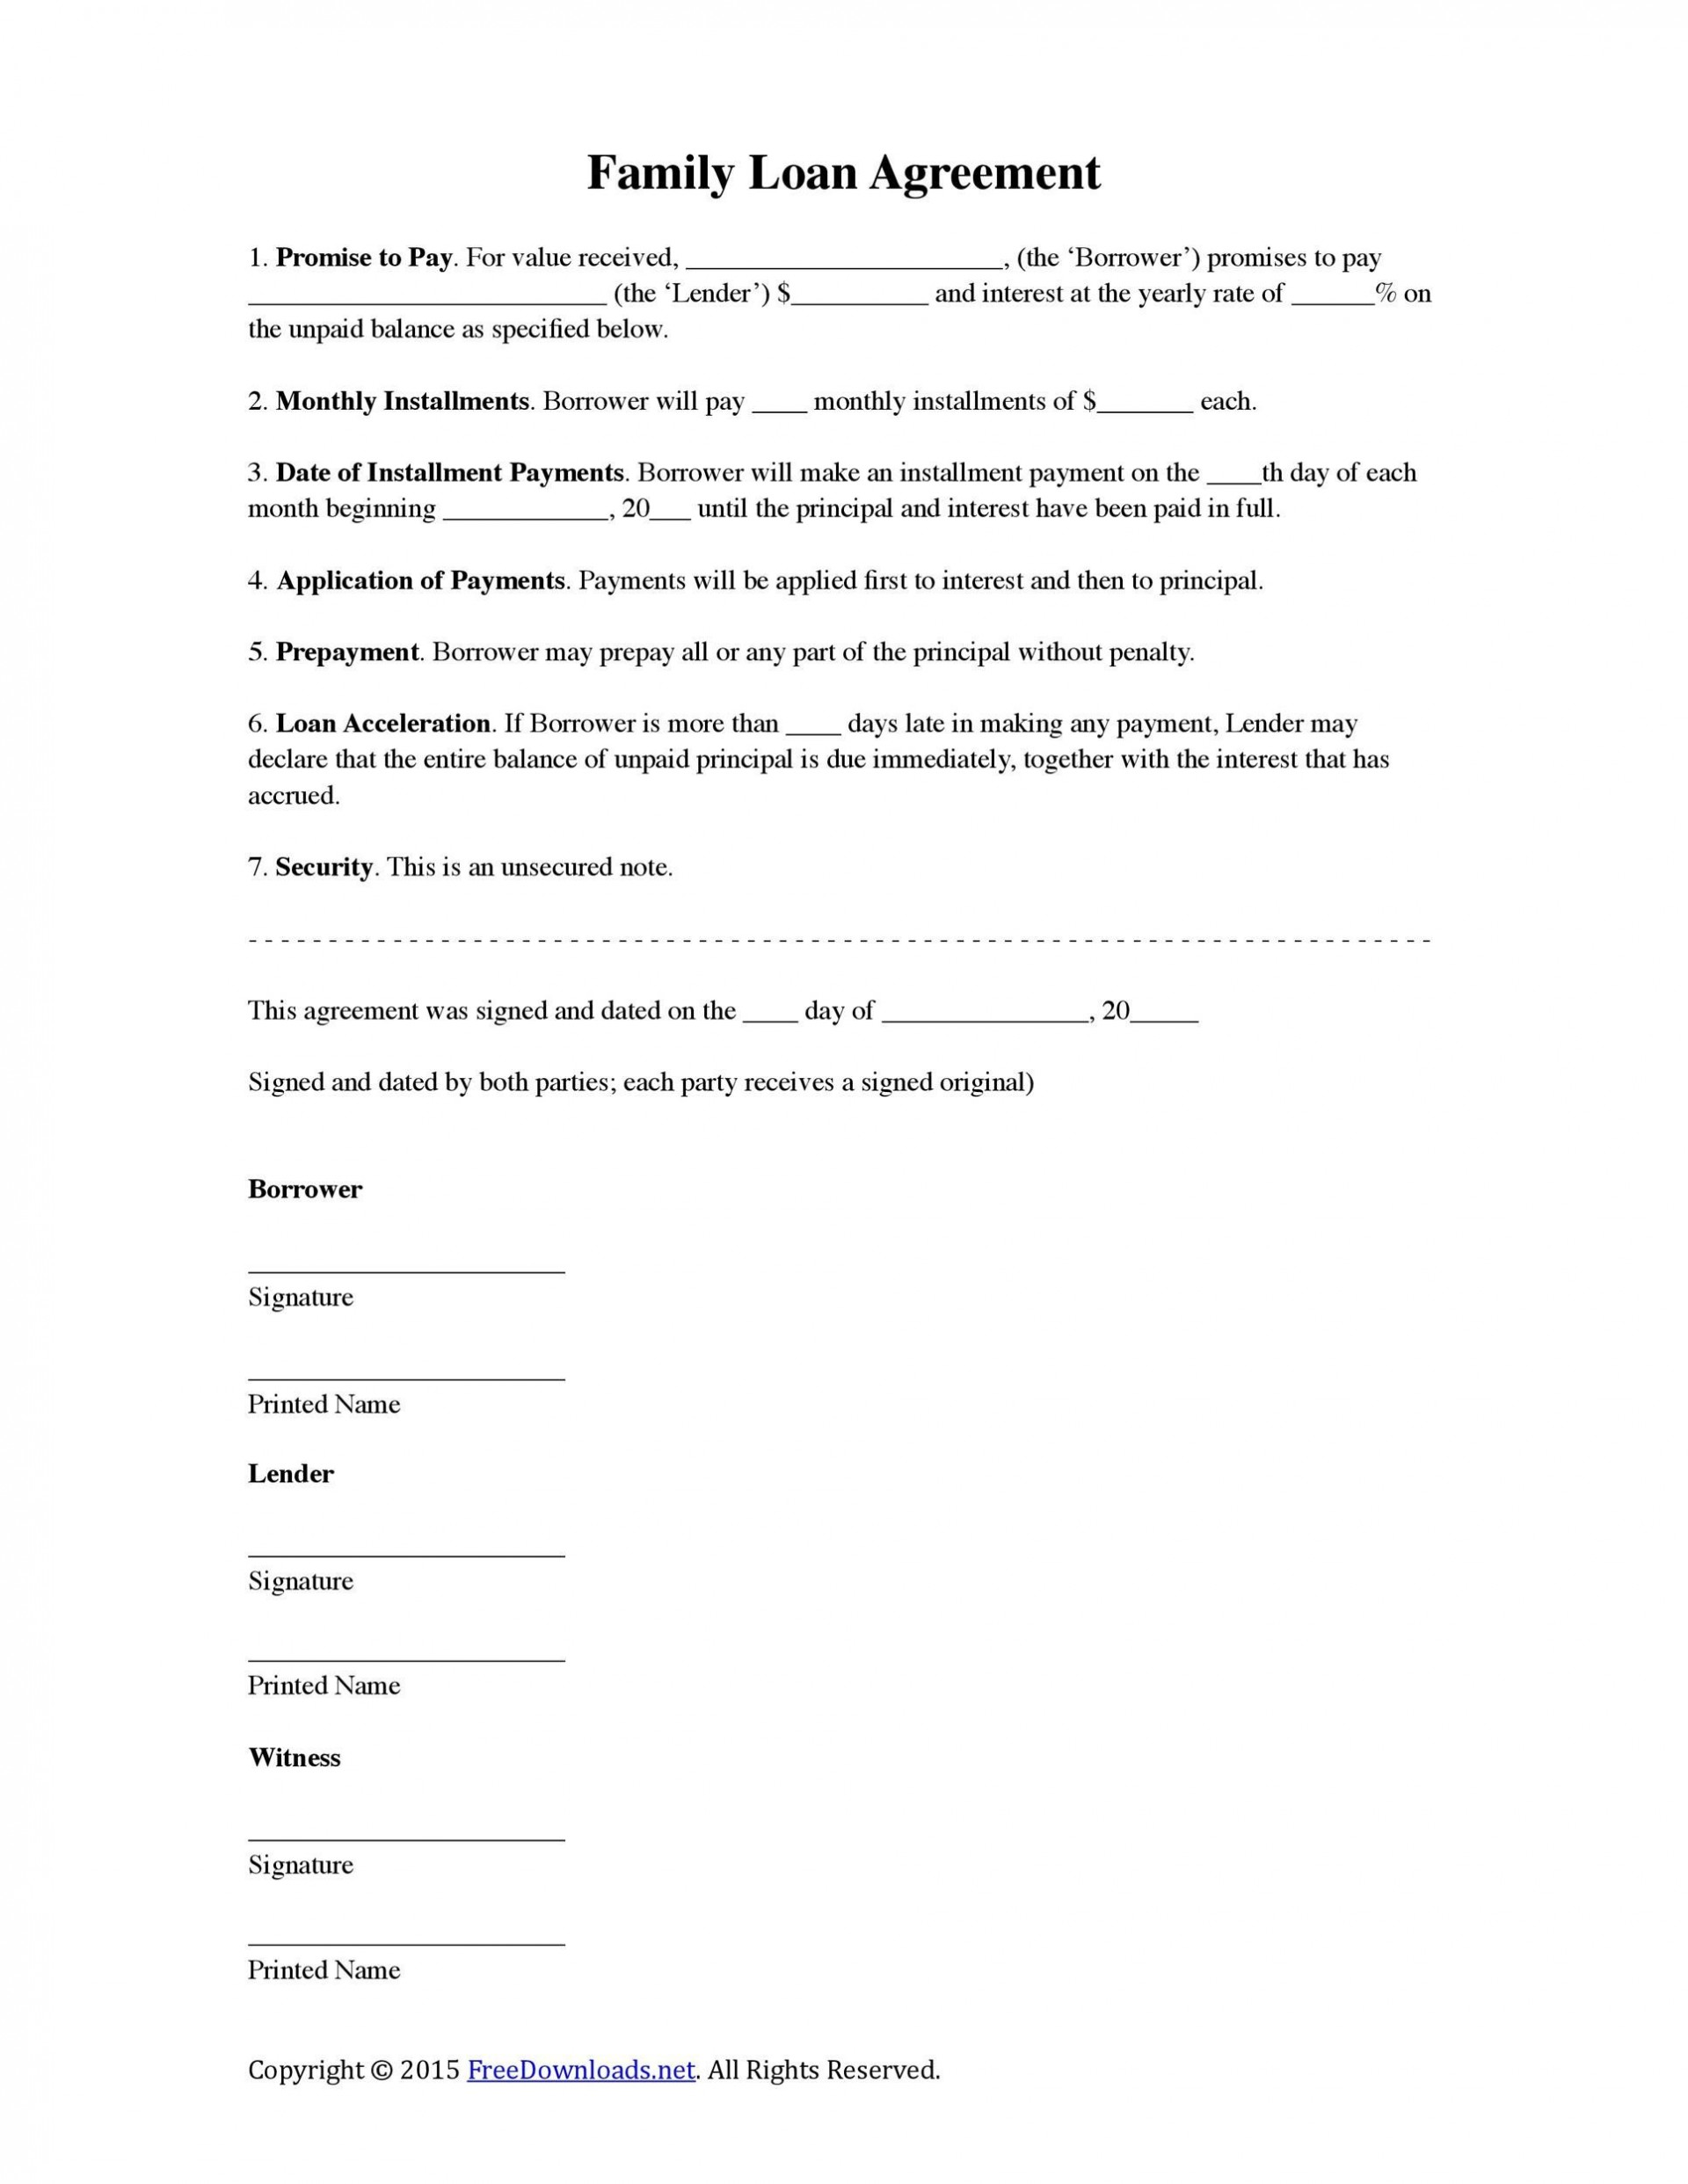 009 Remarkable Family Loan Agreement Template Free Uk Inspiration  Simple1920